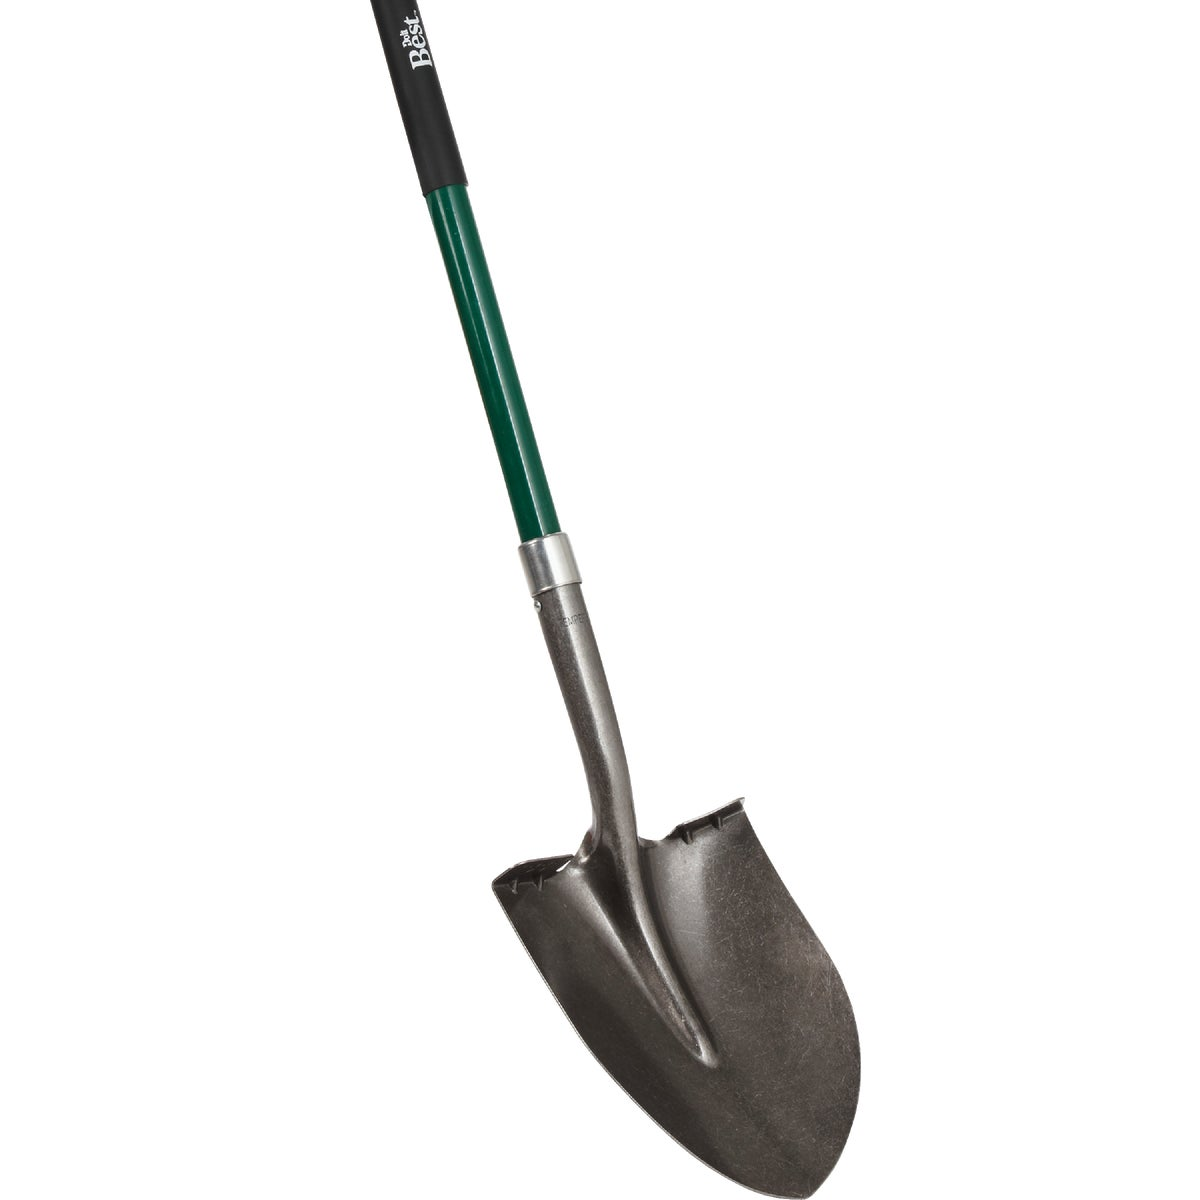 LONG HDL RND PT SHOVEL - YN-8SJ3-5-1FL by Do it Best